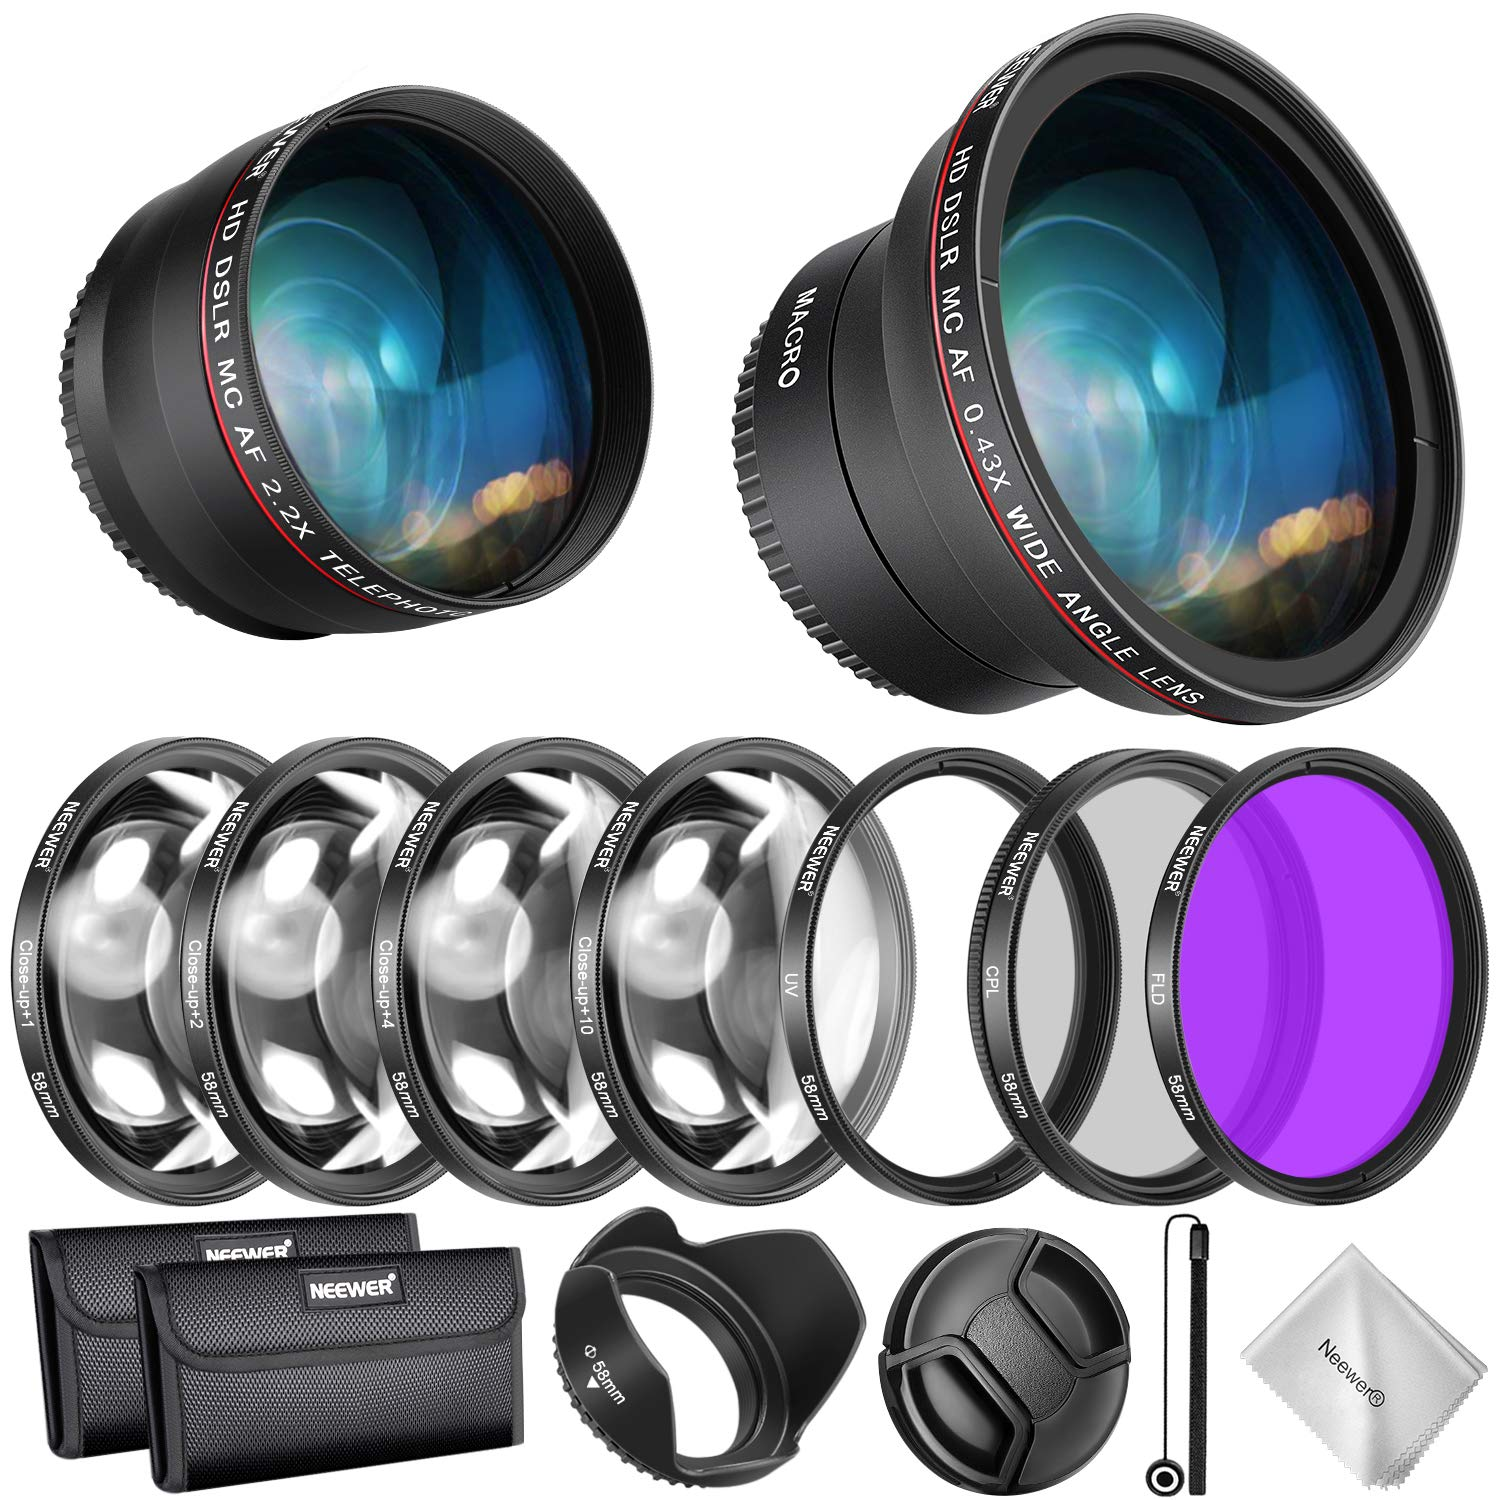 Cap Lens Hood Bag etc UV//CPL//FLD//Filter and Macro Filter Set 2.2X Telephoto Lenses Neewer 58mm Lens and Filter Accessory Kit for Canon Rebel EF-S 18-55mm Lens: 0.43X Wide Angle Lens